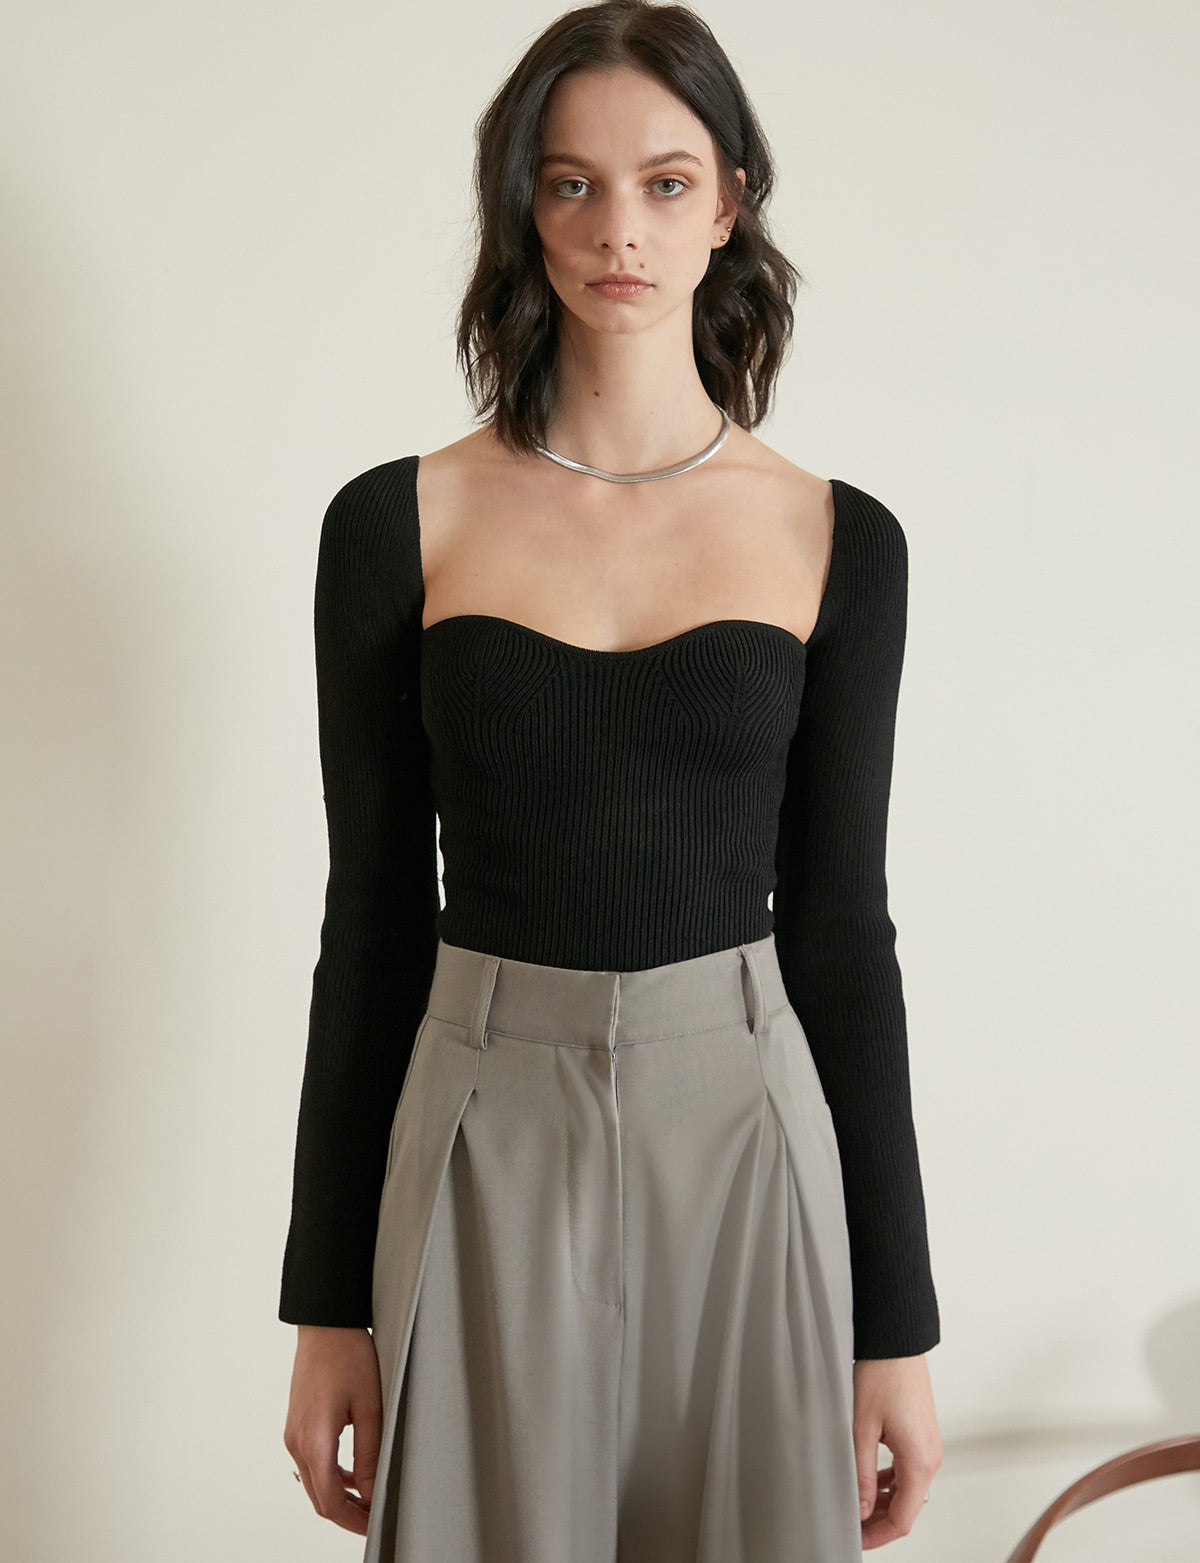 Chiara Knit Bustier Top in Black